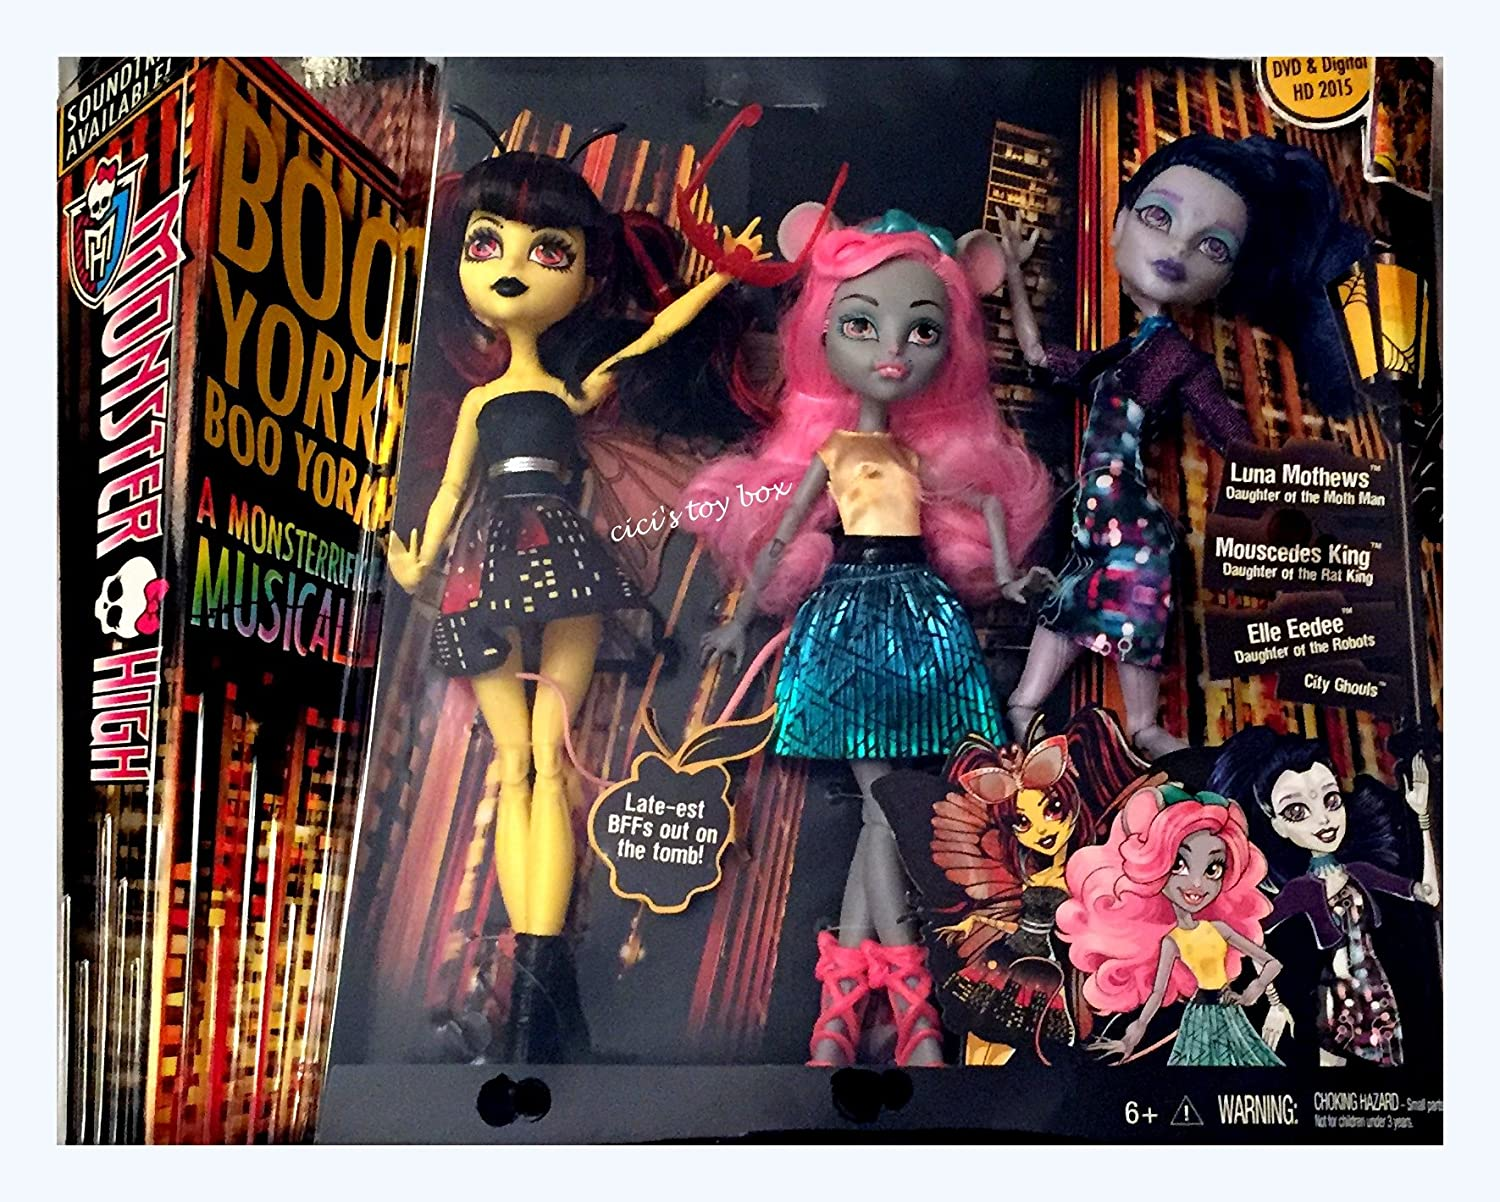 Amazon.es: Mattel Monster High Boo York Boo York A Monsterrific Musical - Luna Mothews, Mouscedes King, and Elle Eedee 3-Pack: Juguetes y juegos